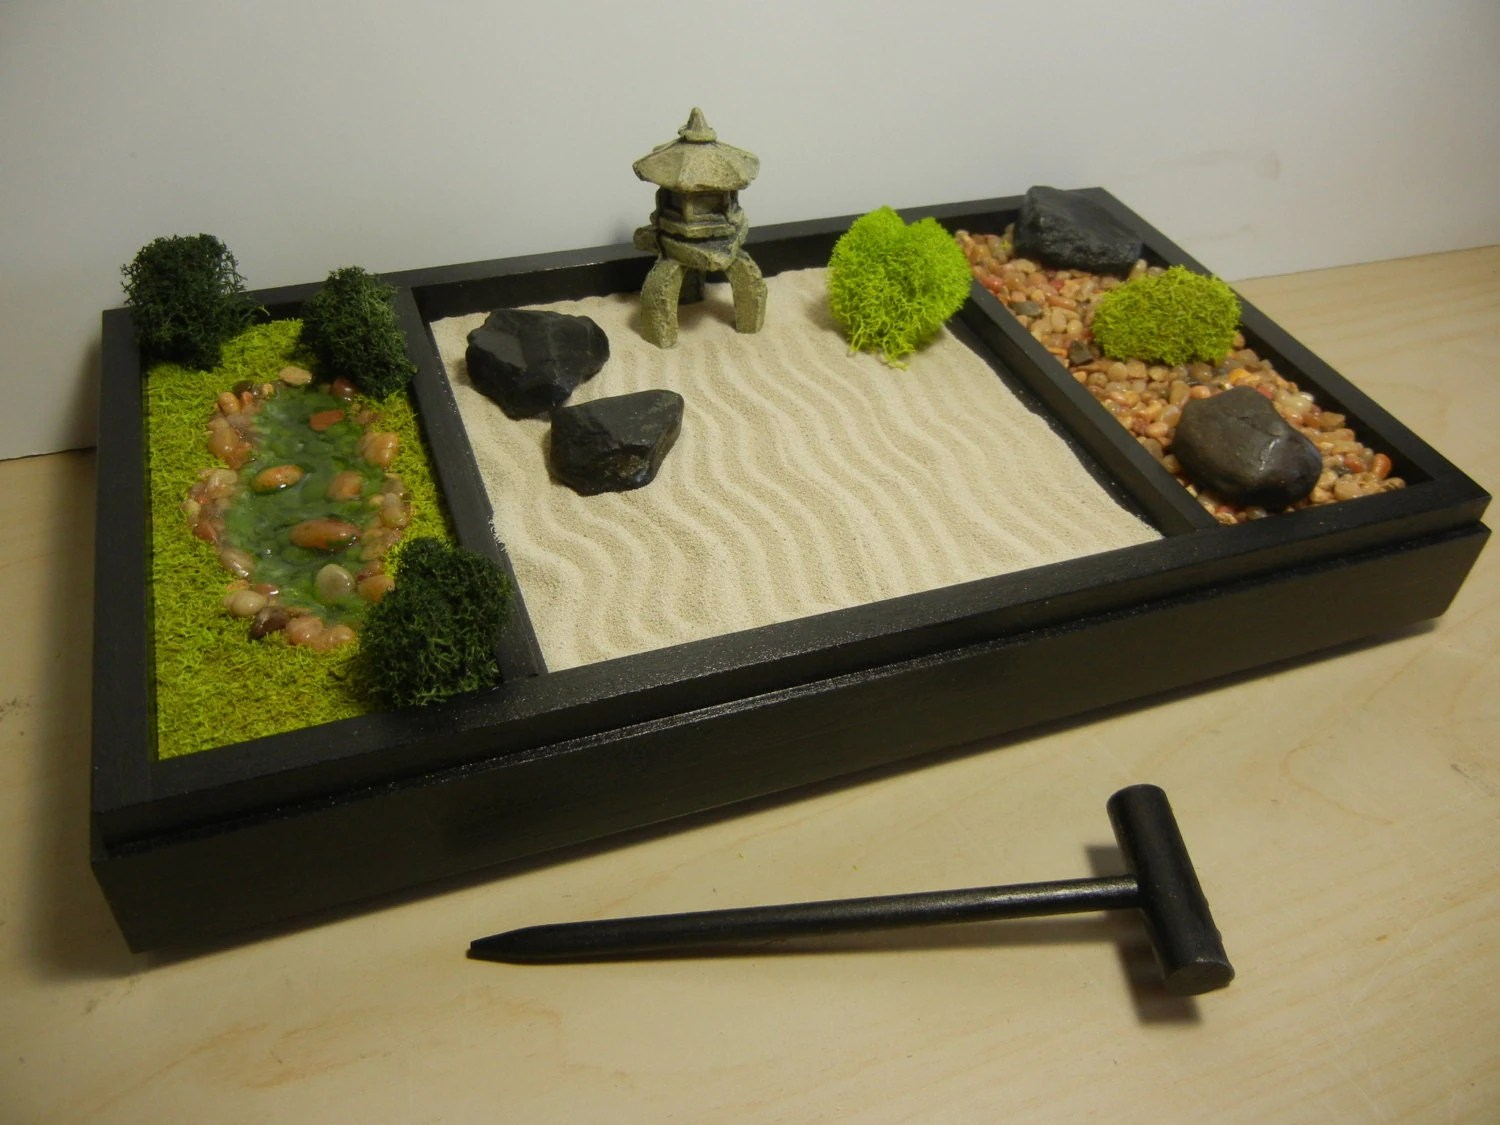 Office Zen Garden 3 In 1 Medium Zen Garden Includes Sand Raking Landscape